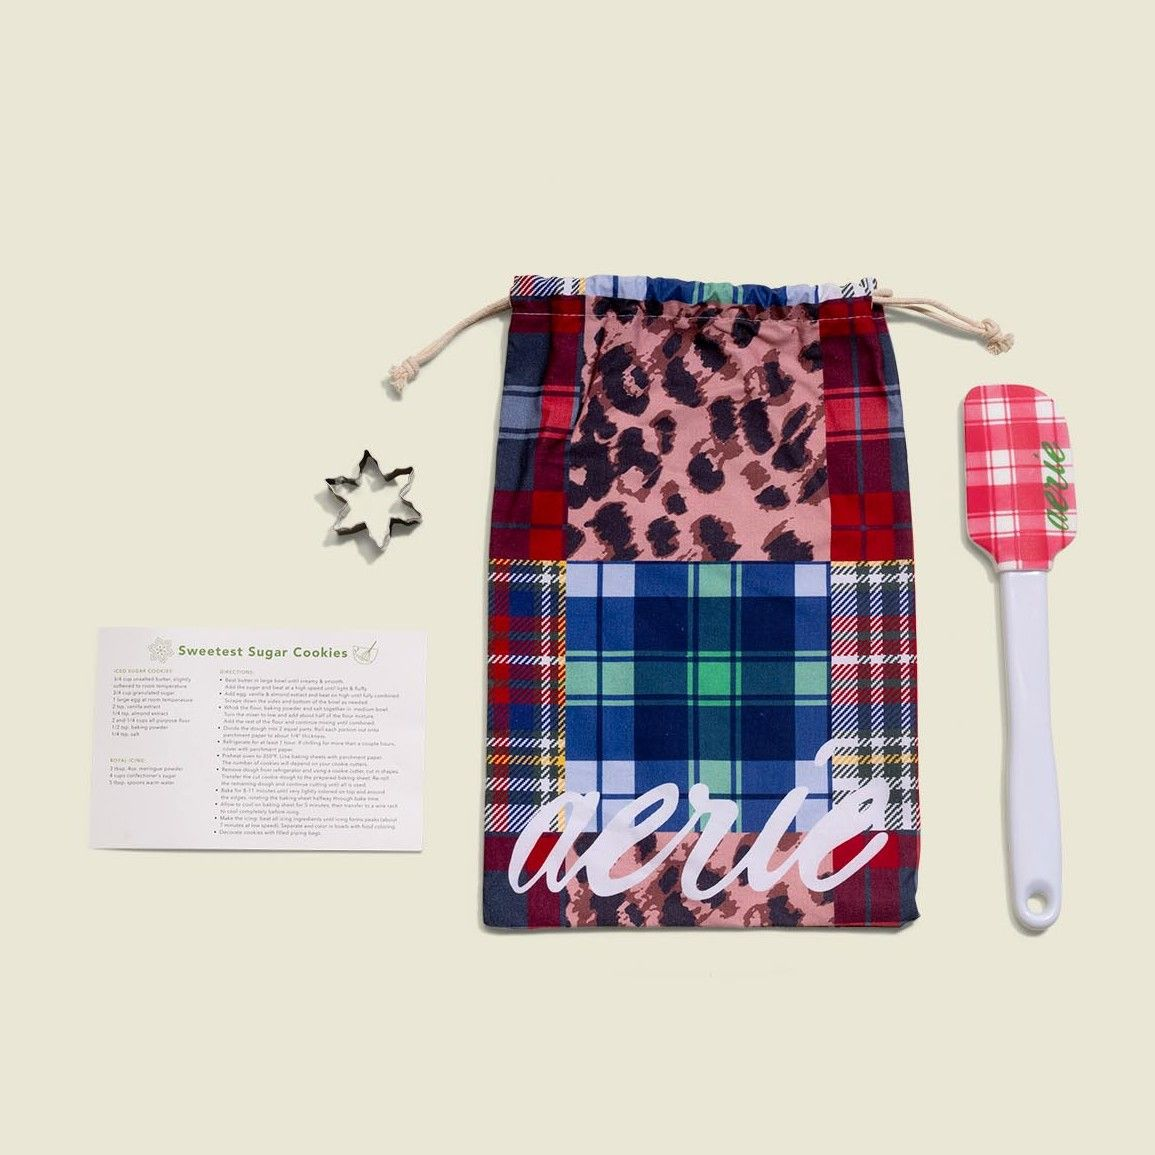 Drawstring pouch with shape cutter and silicone spatula